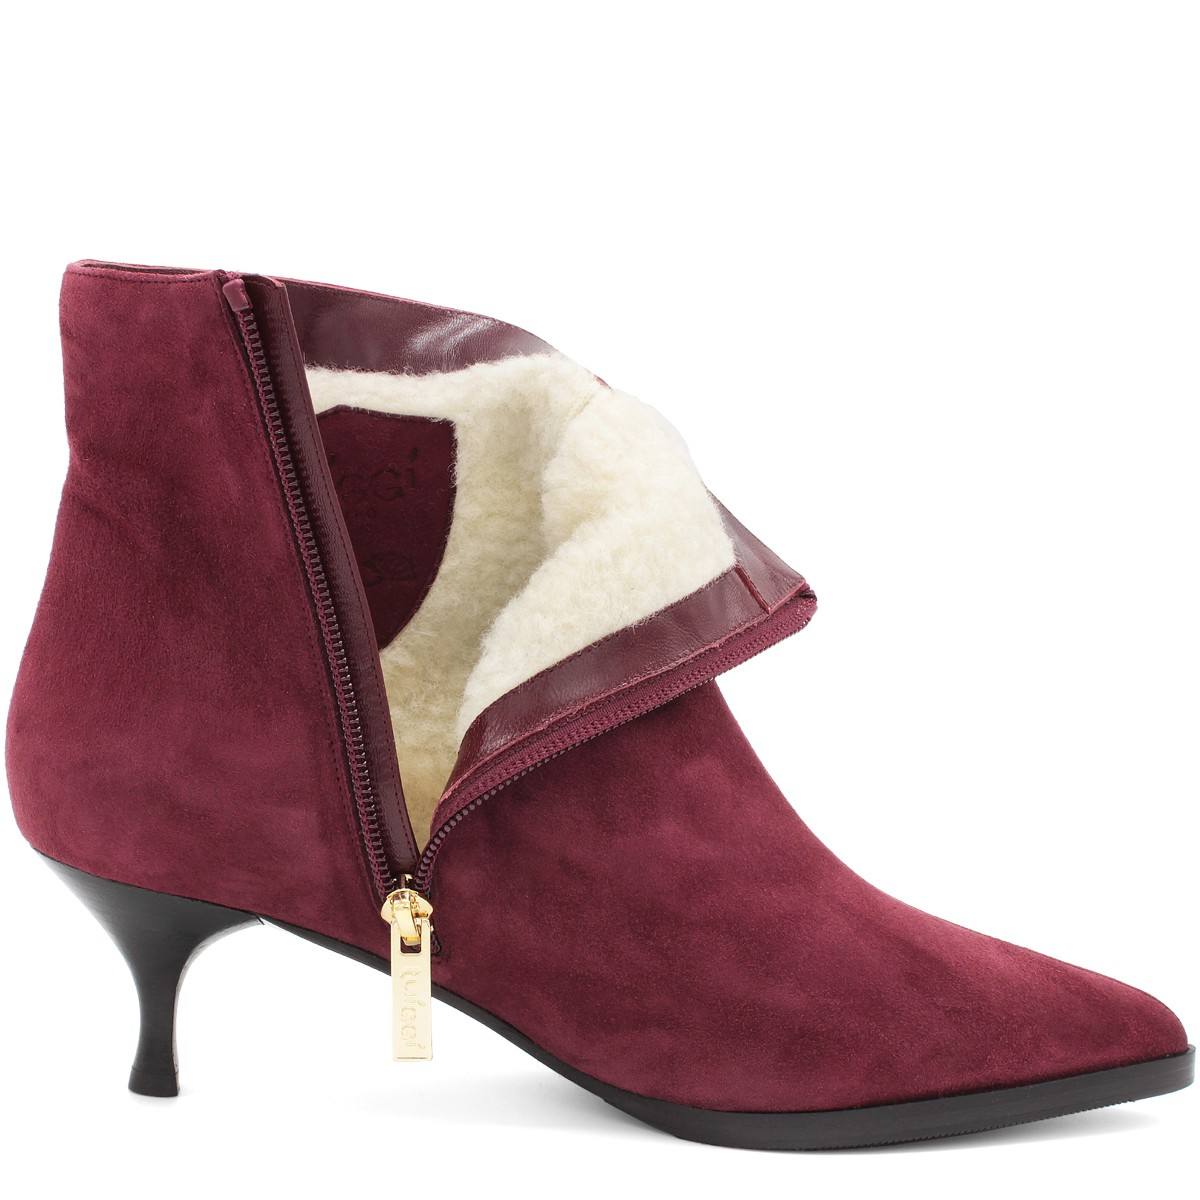 BURGUNDY SUEDE STYLISH WOOL FUR LINED ANKLE BOOTS